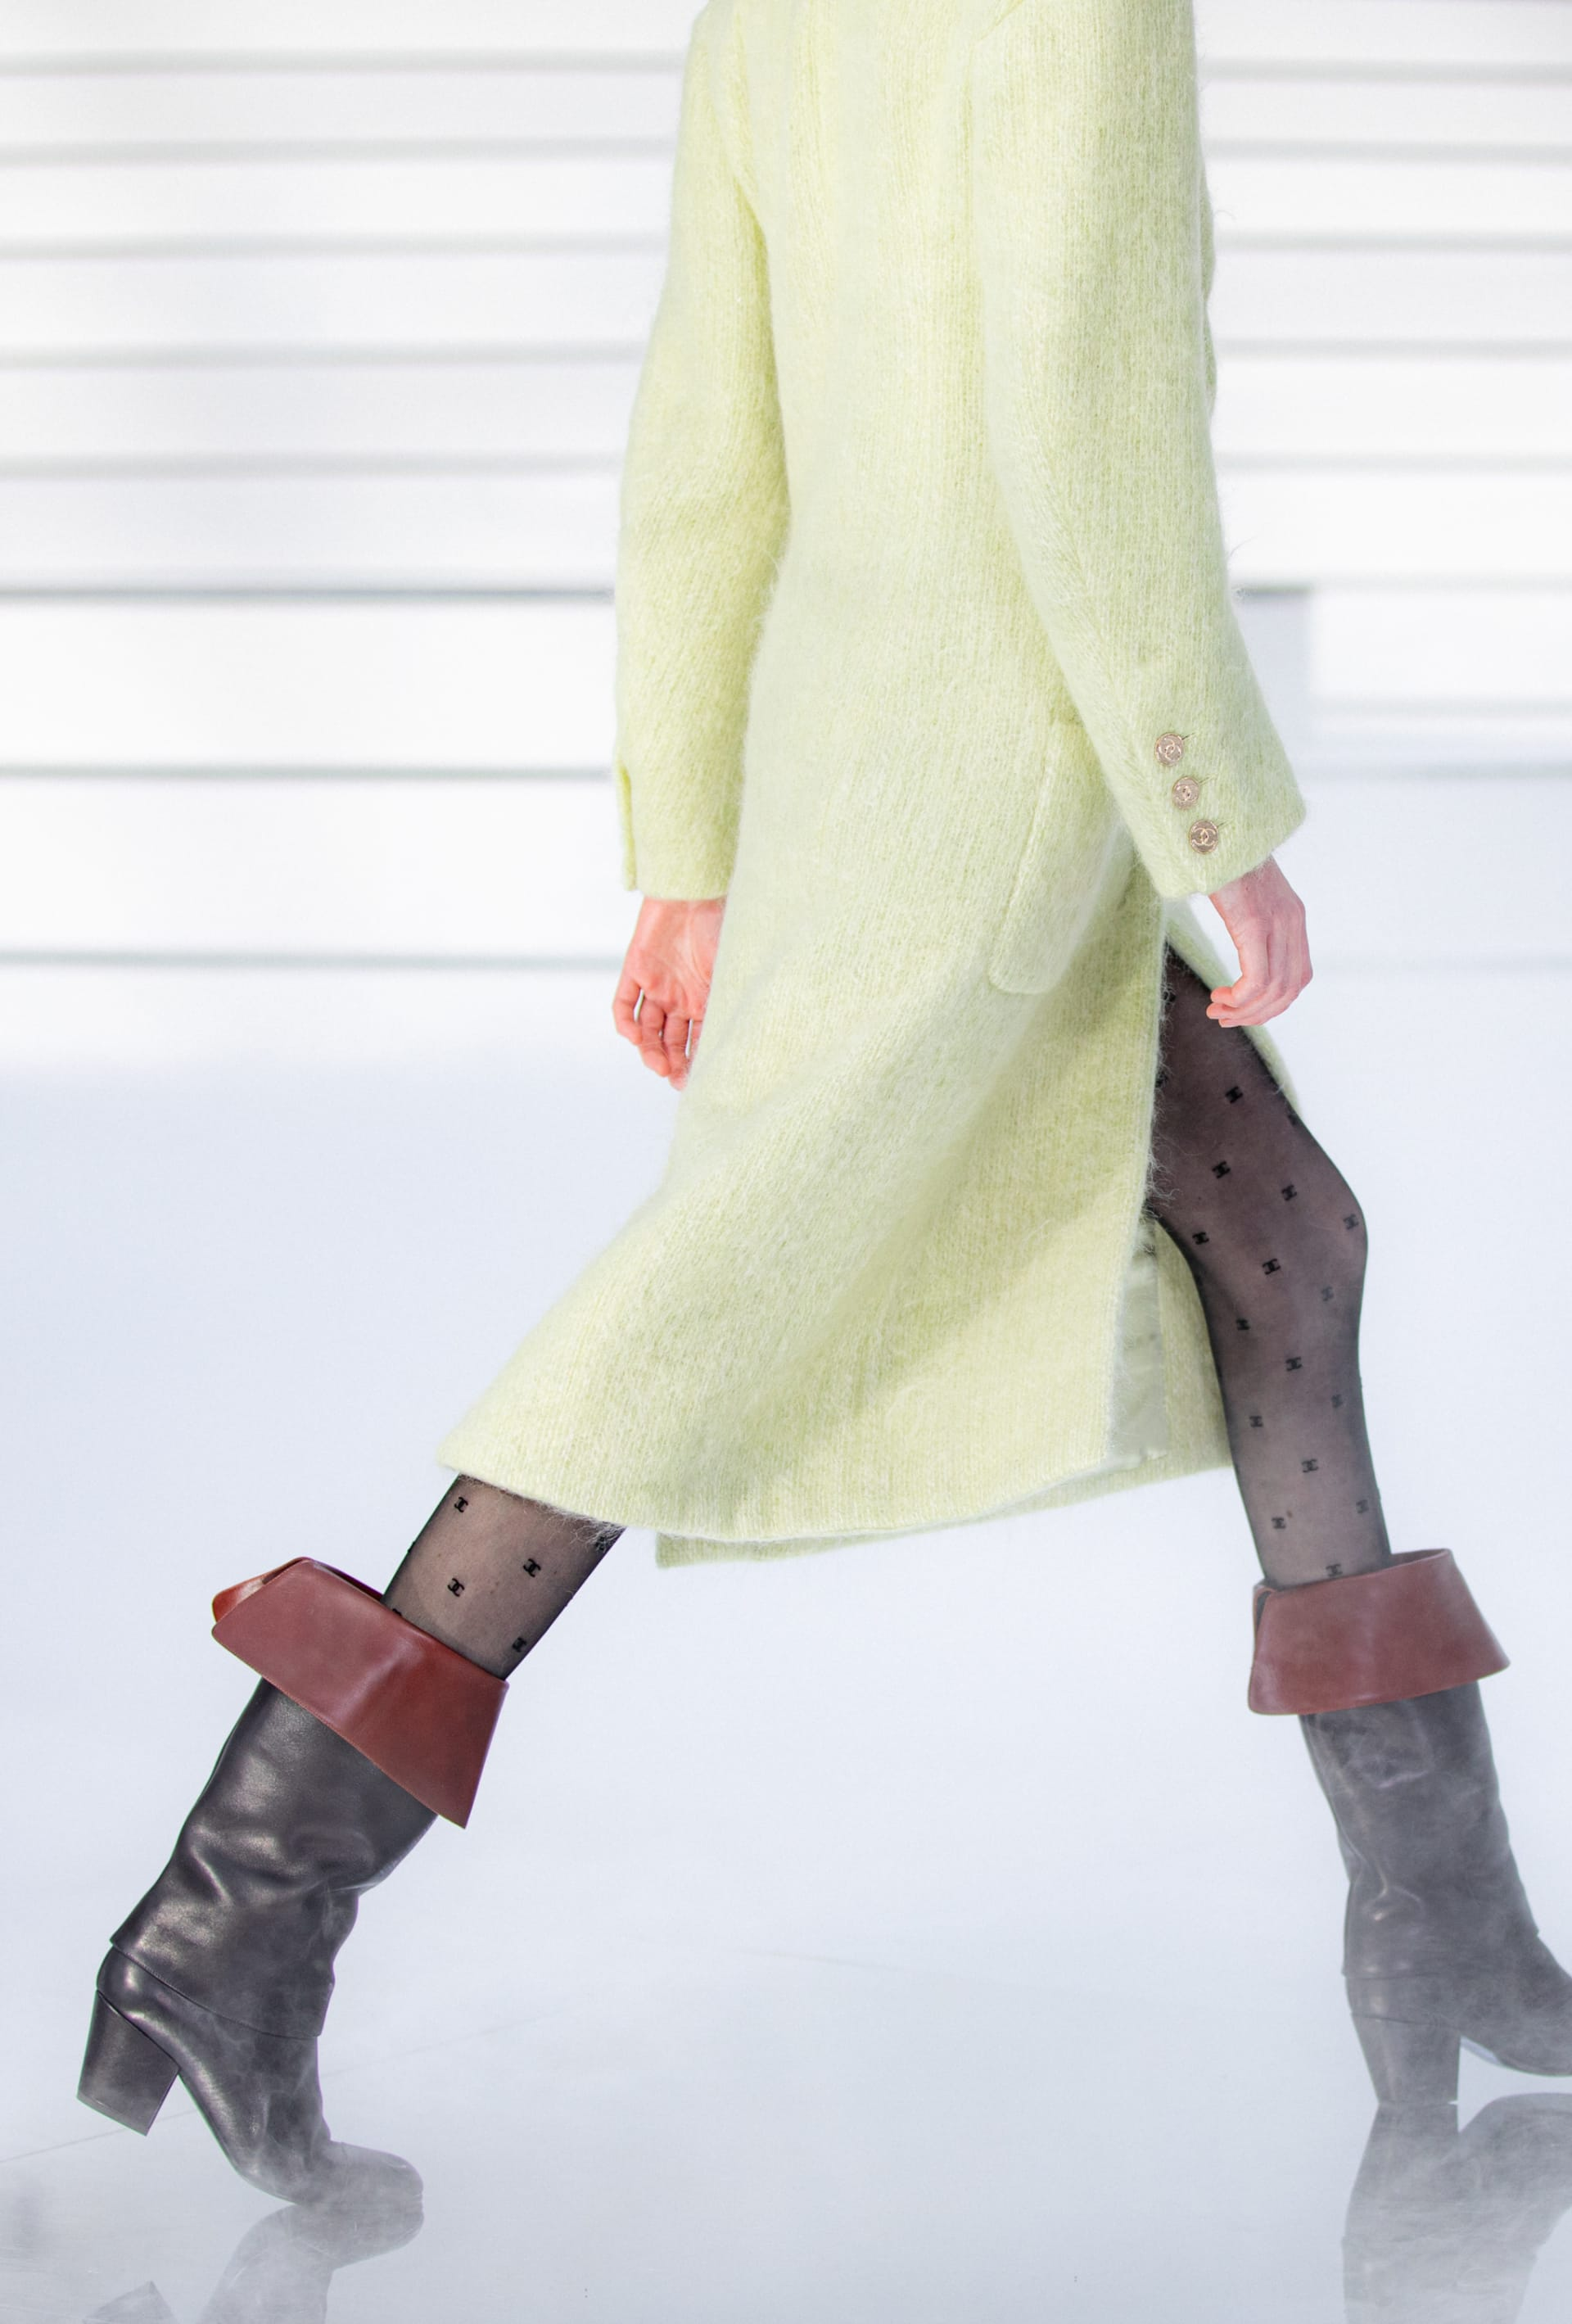 Additional image 2 - Look  3 -  - Fall-Winter 2020/21